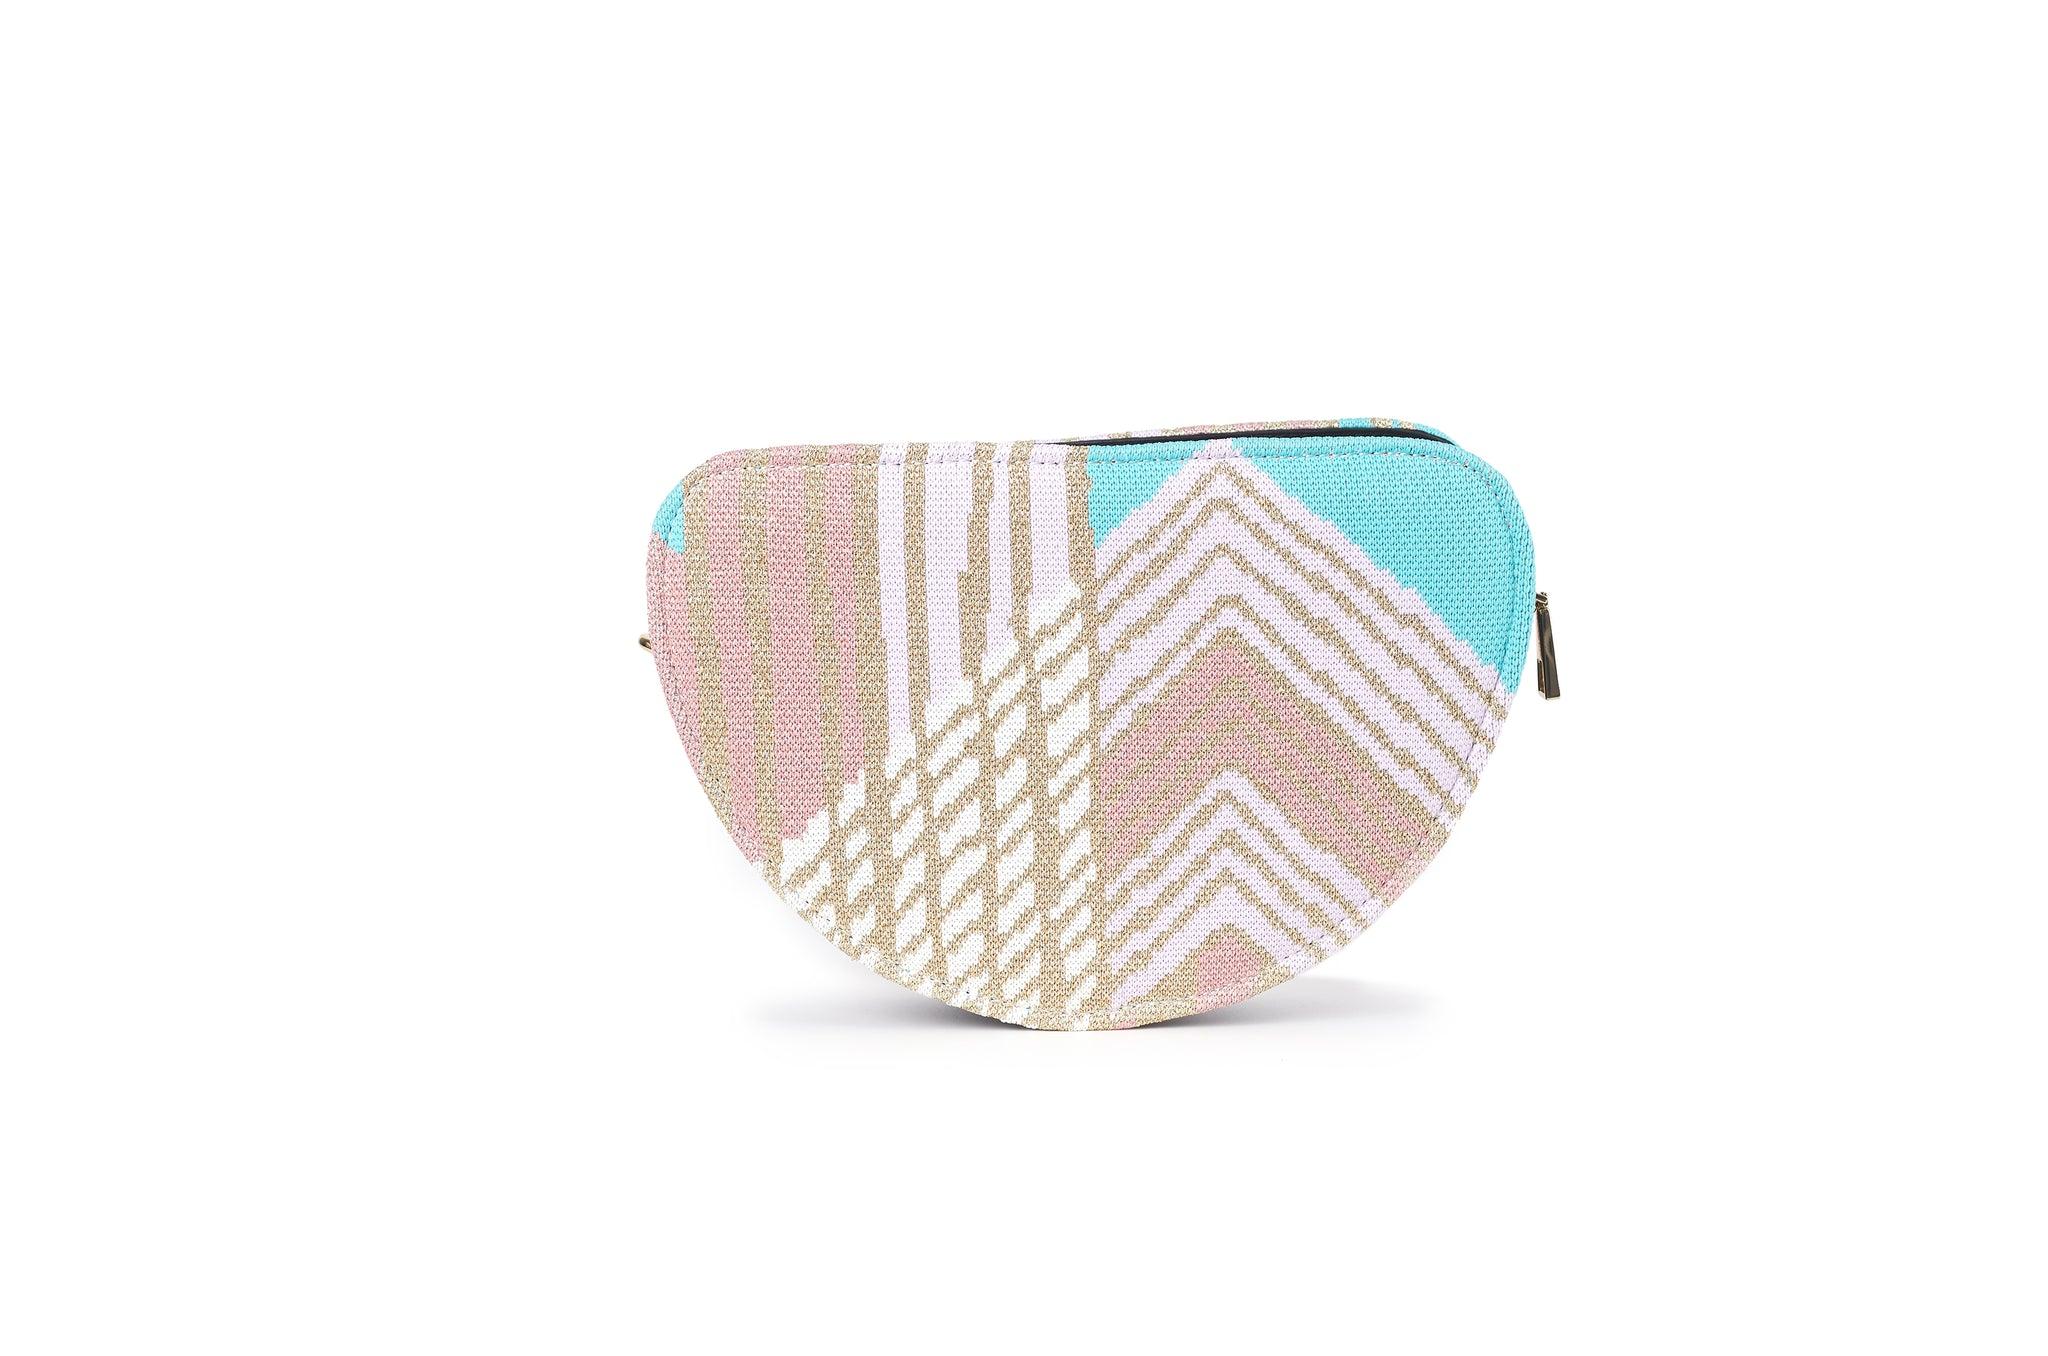 Graffiti Series - Memphis Graphic Crossbody bag Pastel